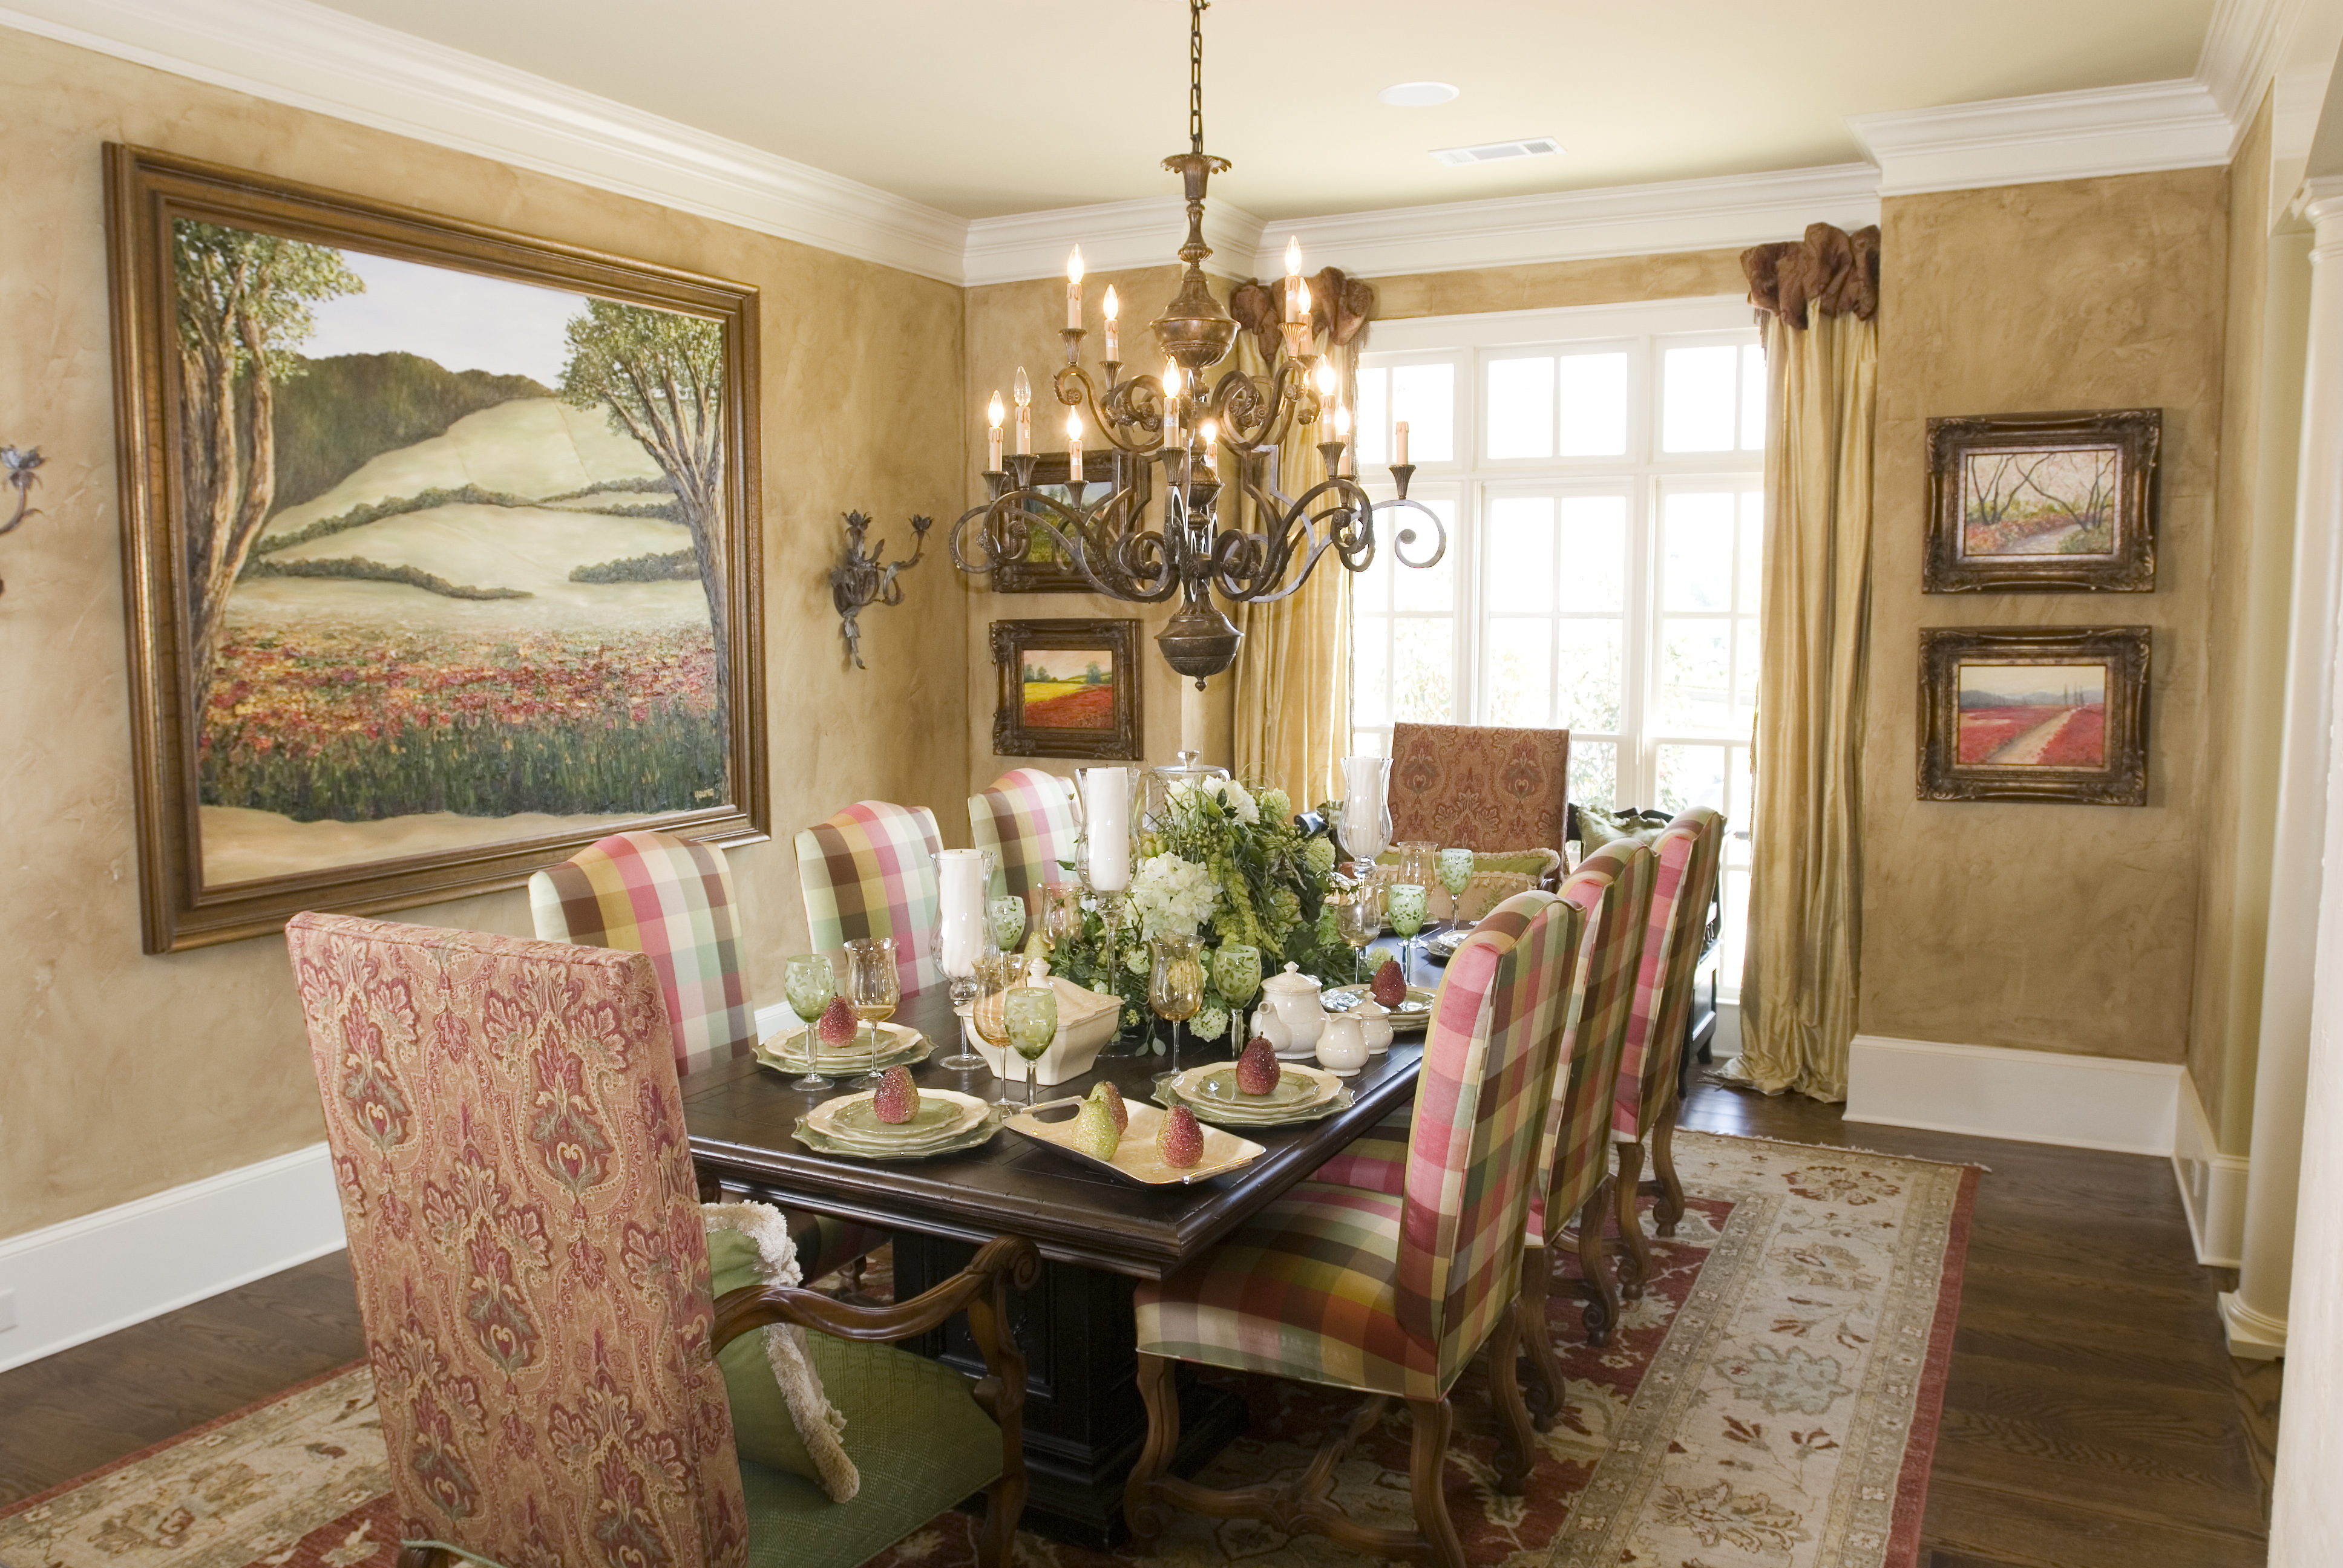 Do It Yourself Home Design: Economy Downturn Has Homeowners Turning To Home Interior